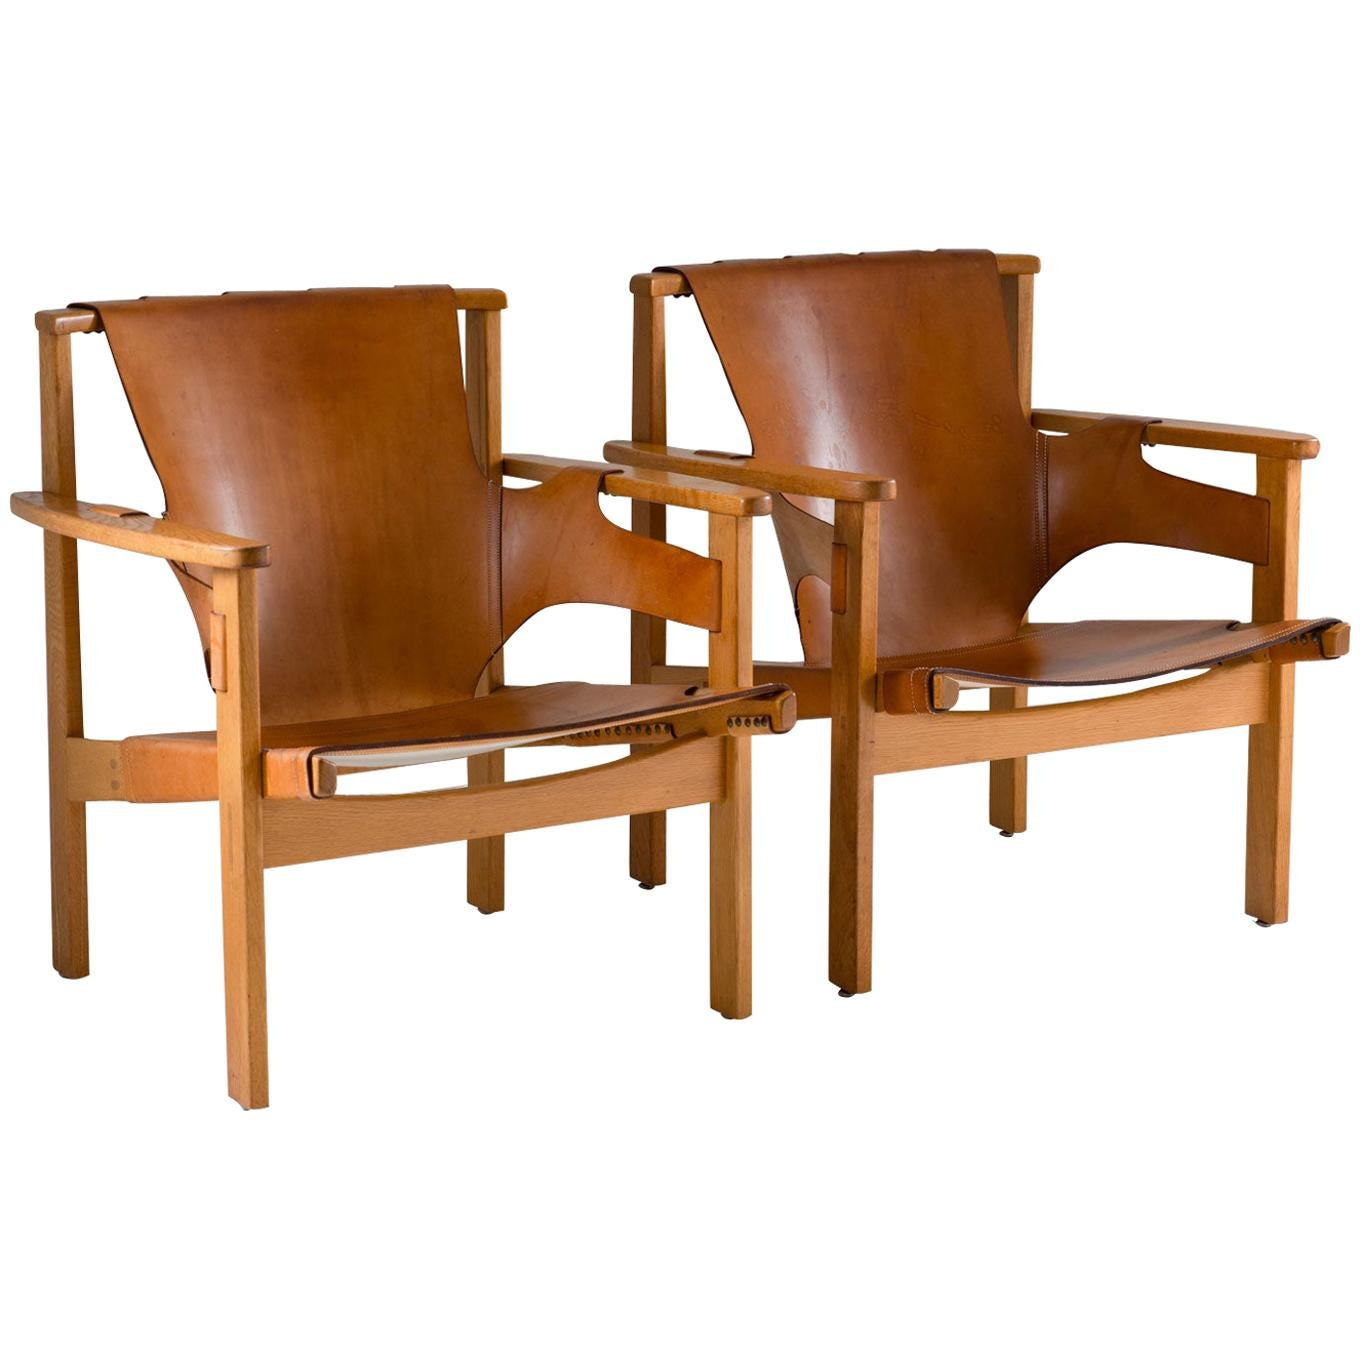 """Scandinavian Midcentury Easy Chairs """"Trienna"""" by Carl-Axel Acking for NK"""